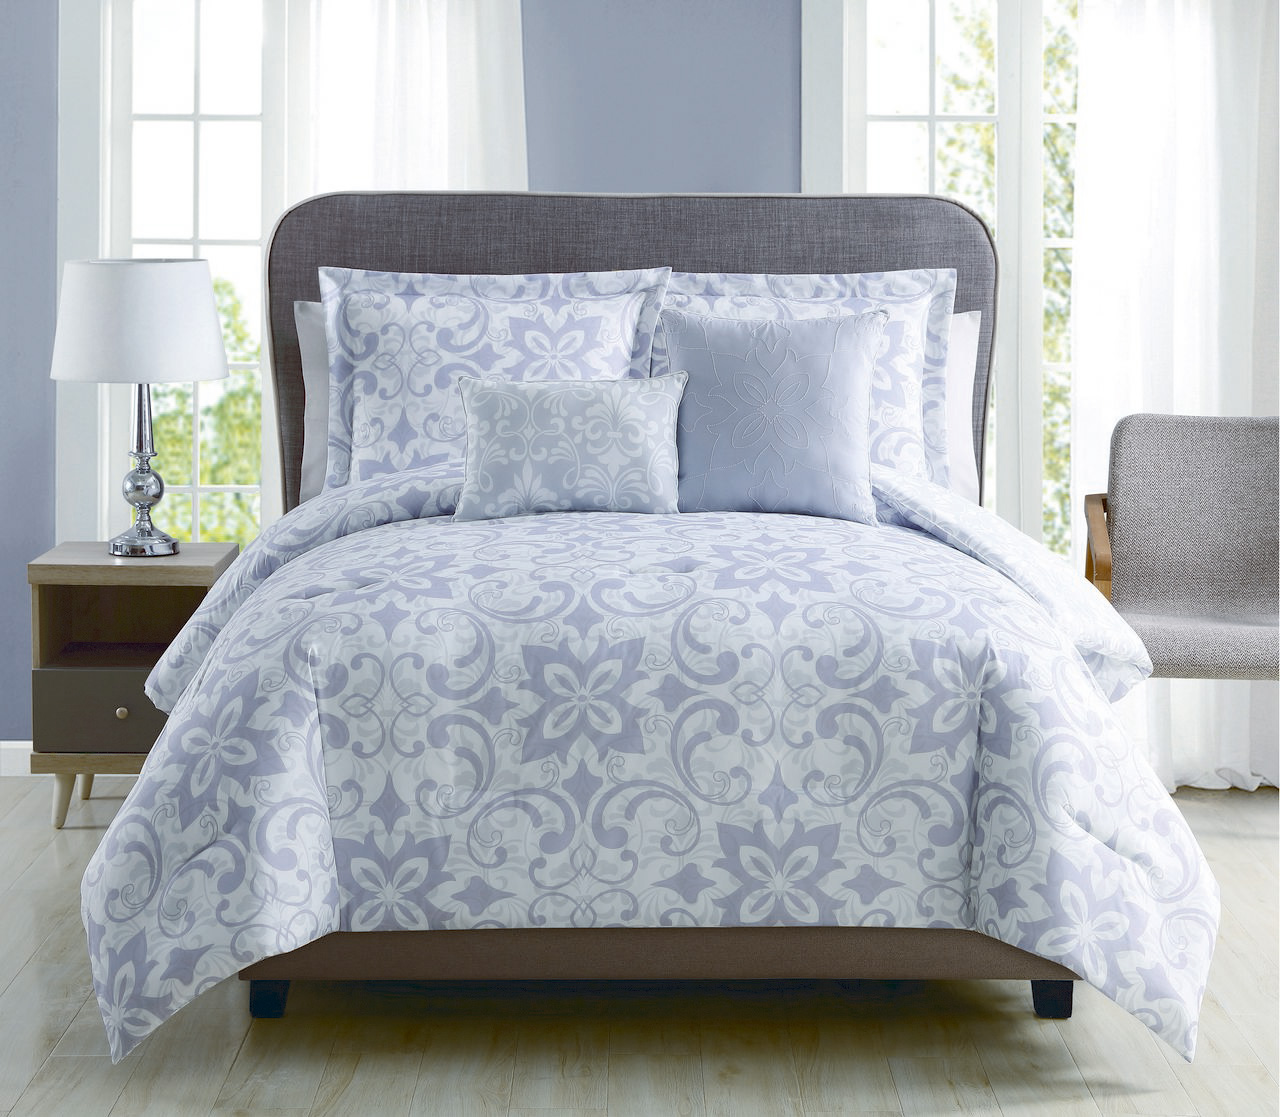 comforter waterford bed bedding piece set reversible wayfair ca pdp celine bath